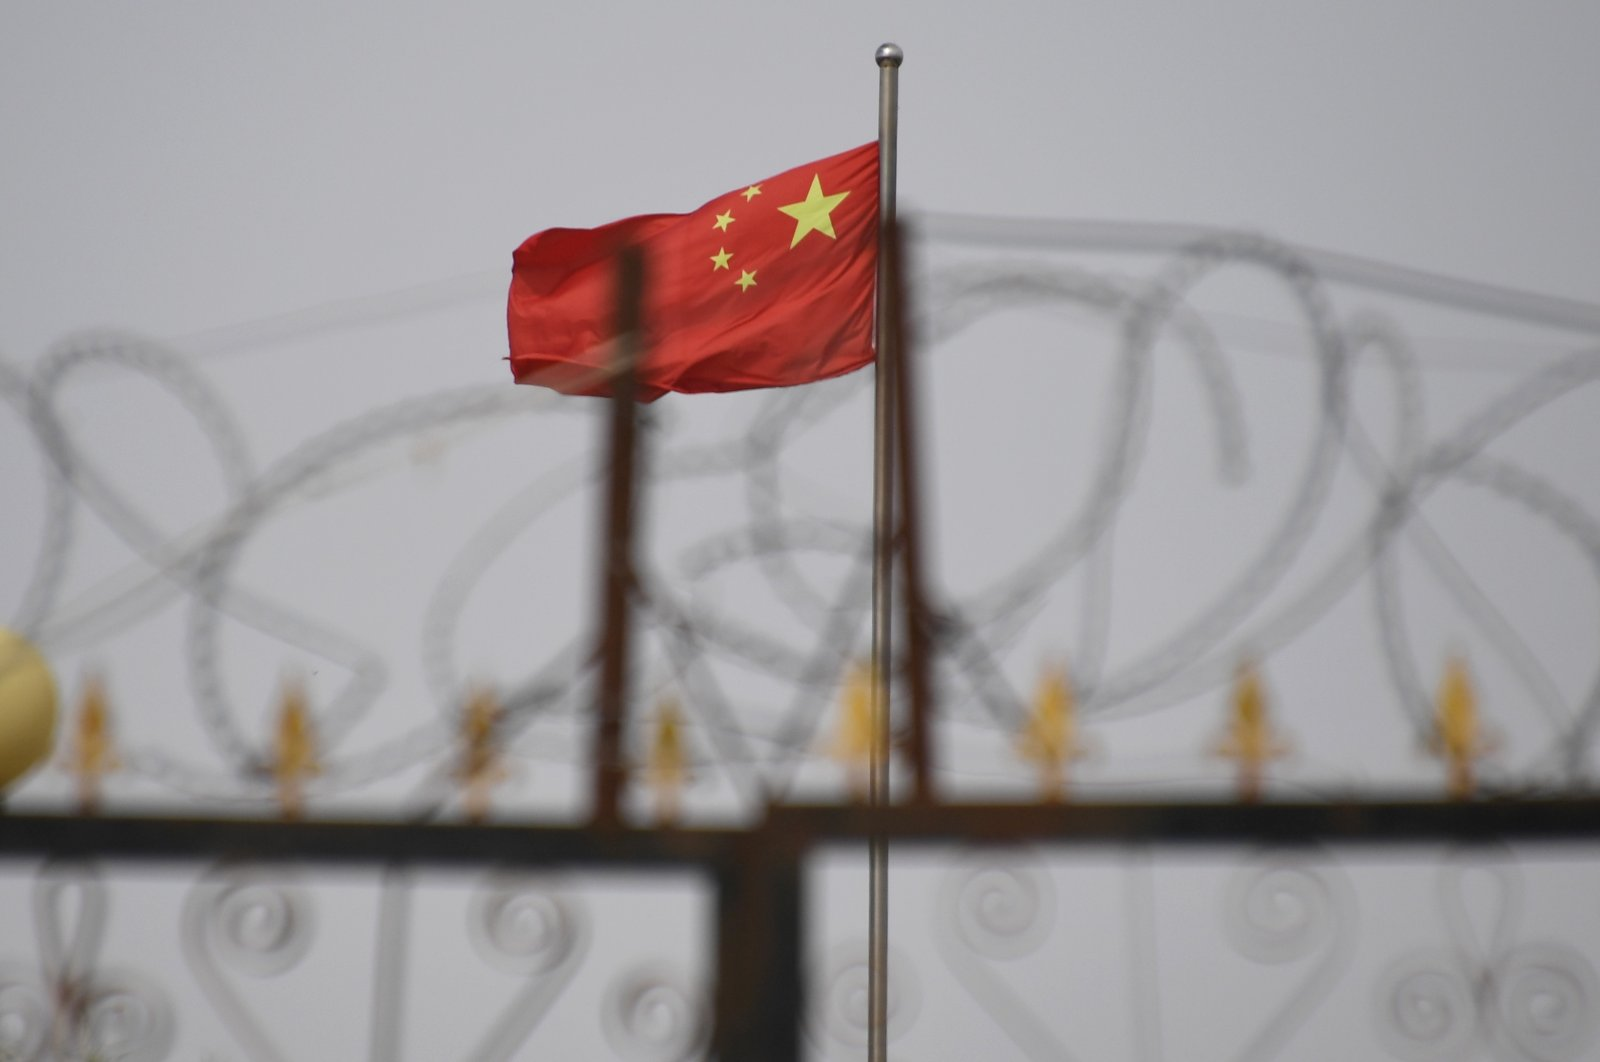 The Chinese flag flies behind razor wire at a housing compound in Yangisar, south of Kashgar, in China's western Xinjiang region, June 4, 2019. (Photo provided by Badung police via AFP)